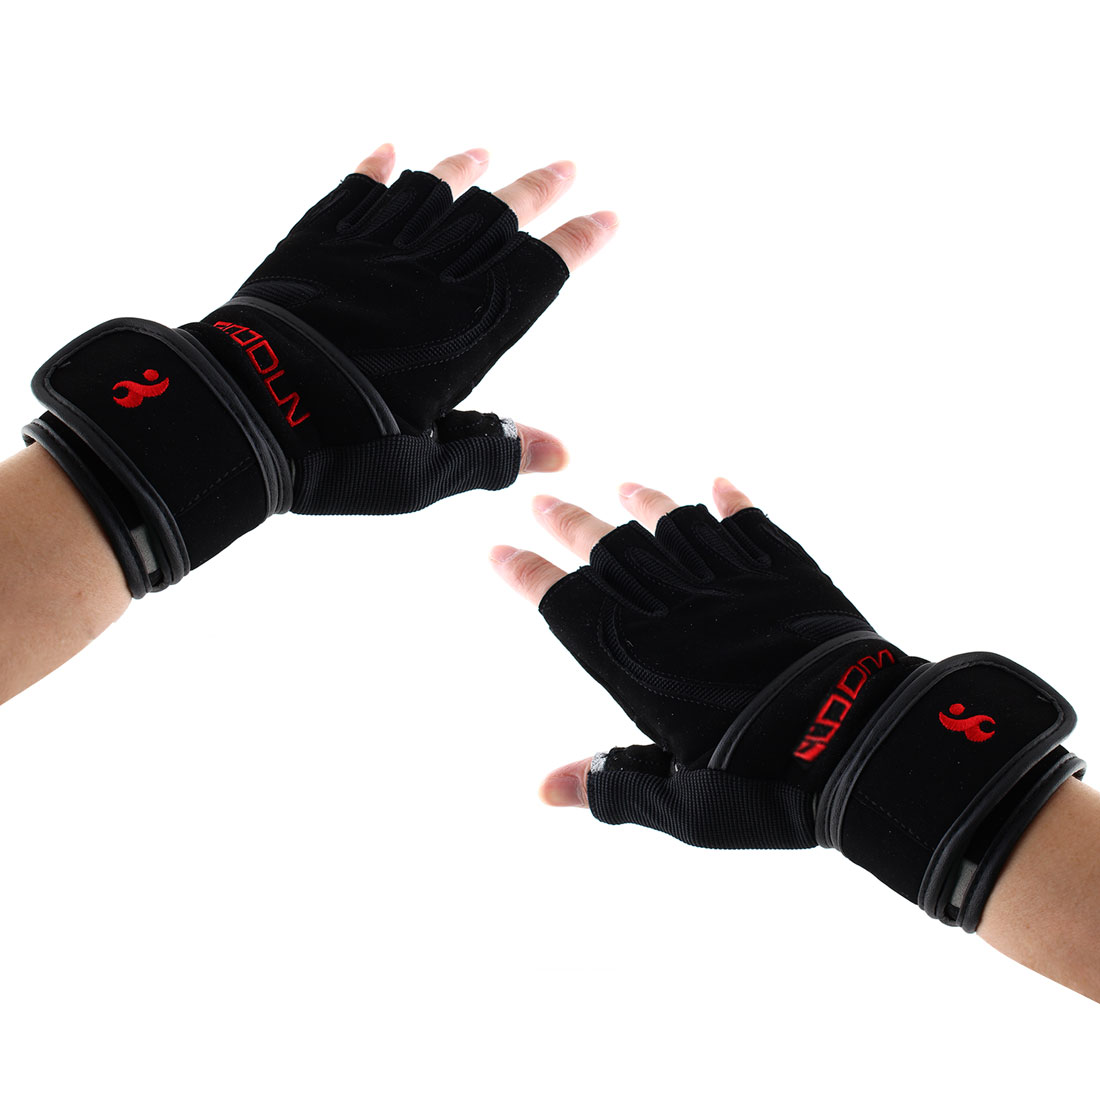 Boodun Authorized Men Sports Weight Lifting Cycling Gym Workout Fitness Anti Slip Half Finger Gloves Size L Pair